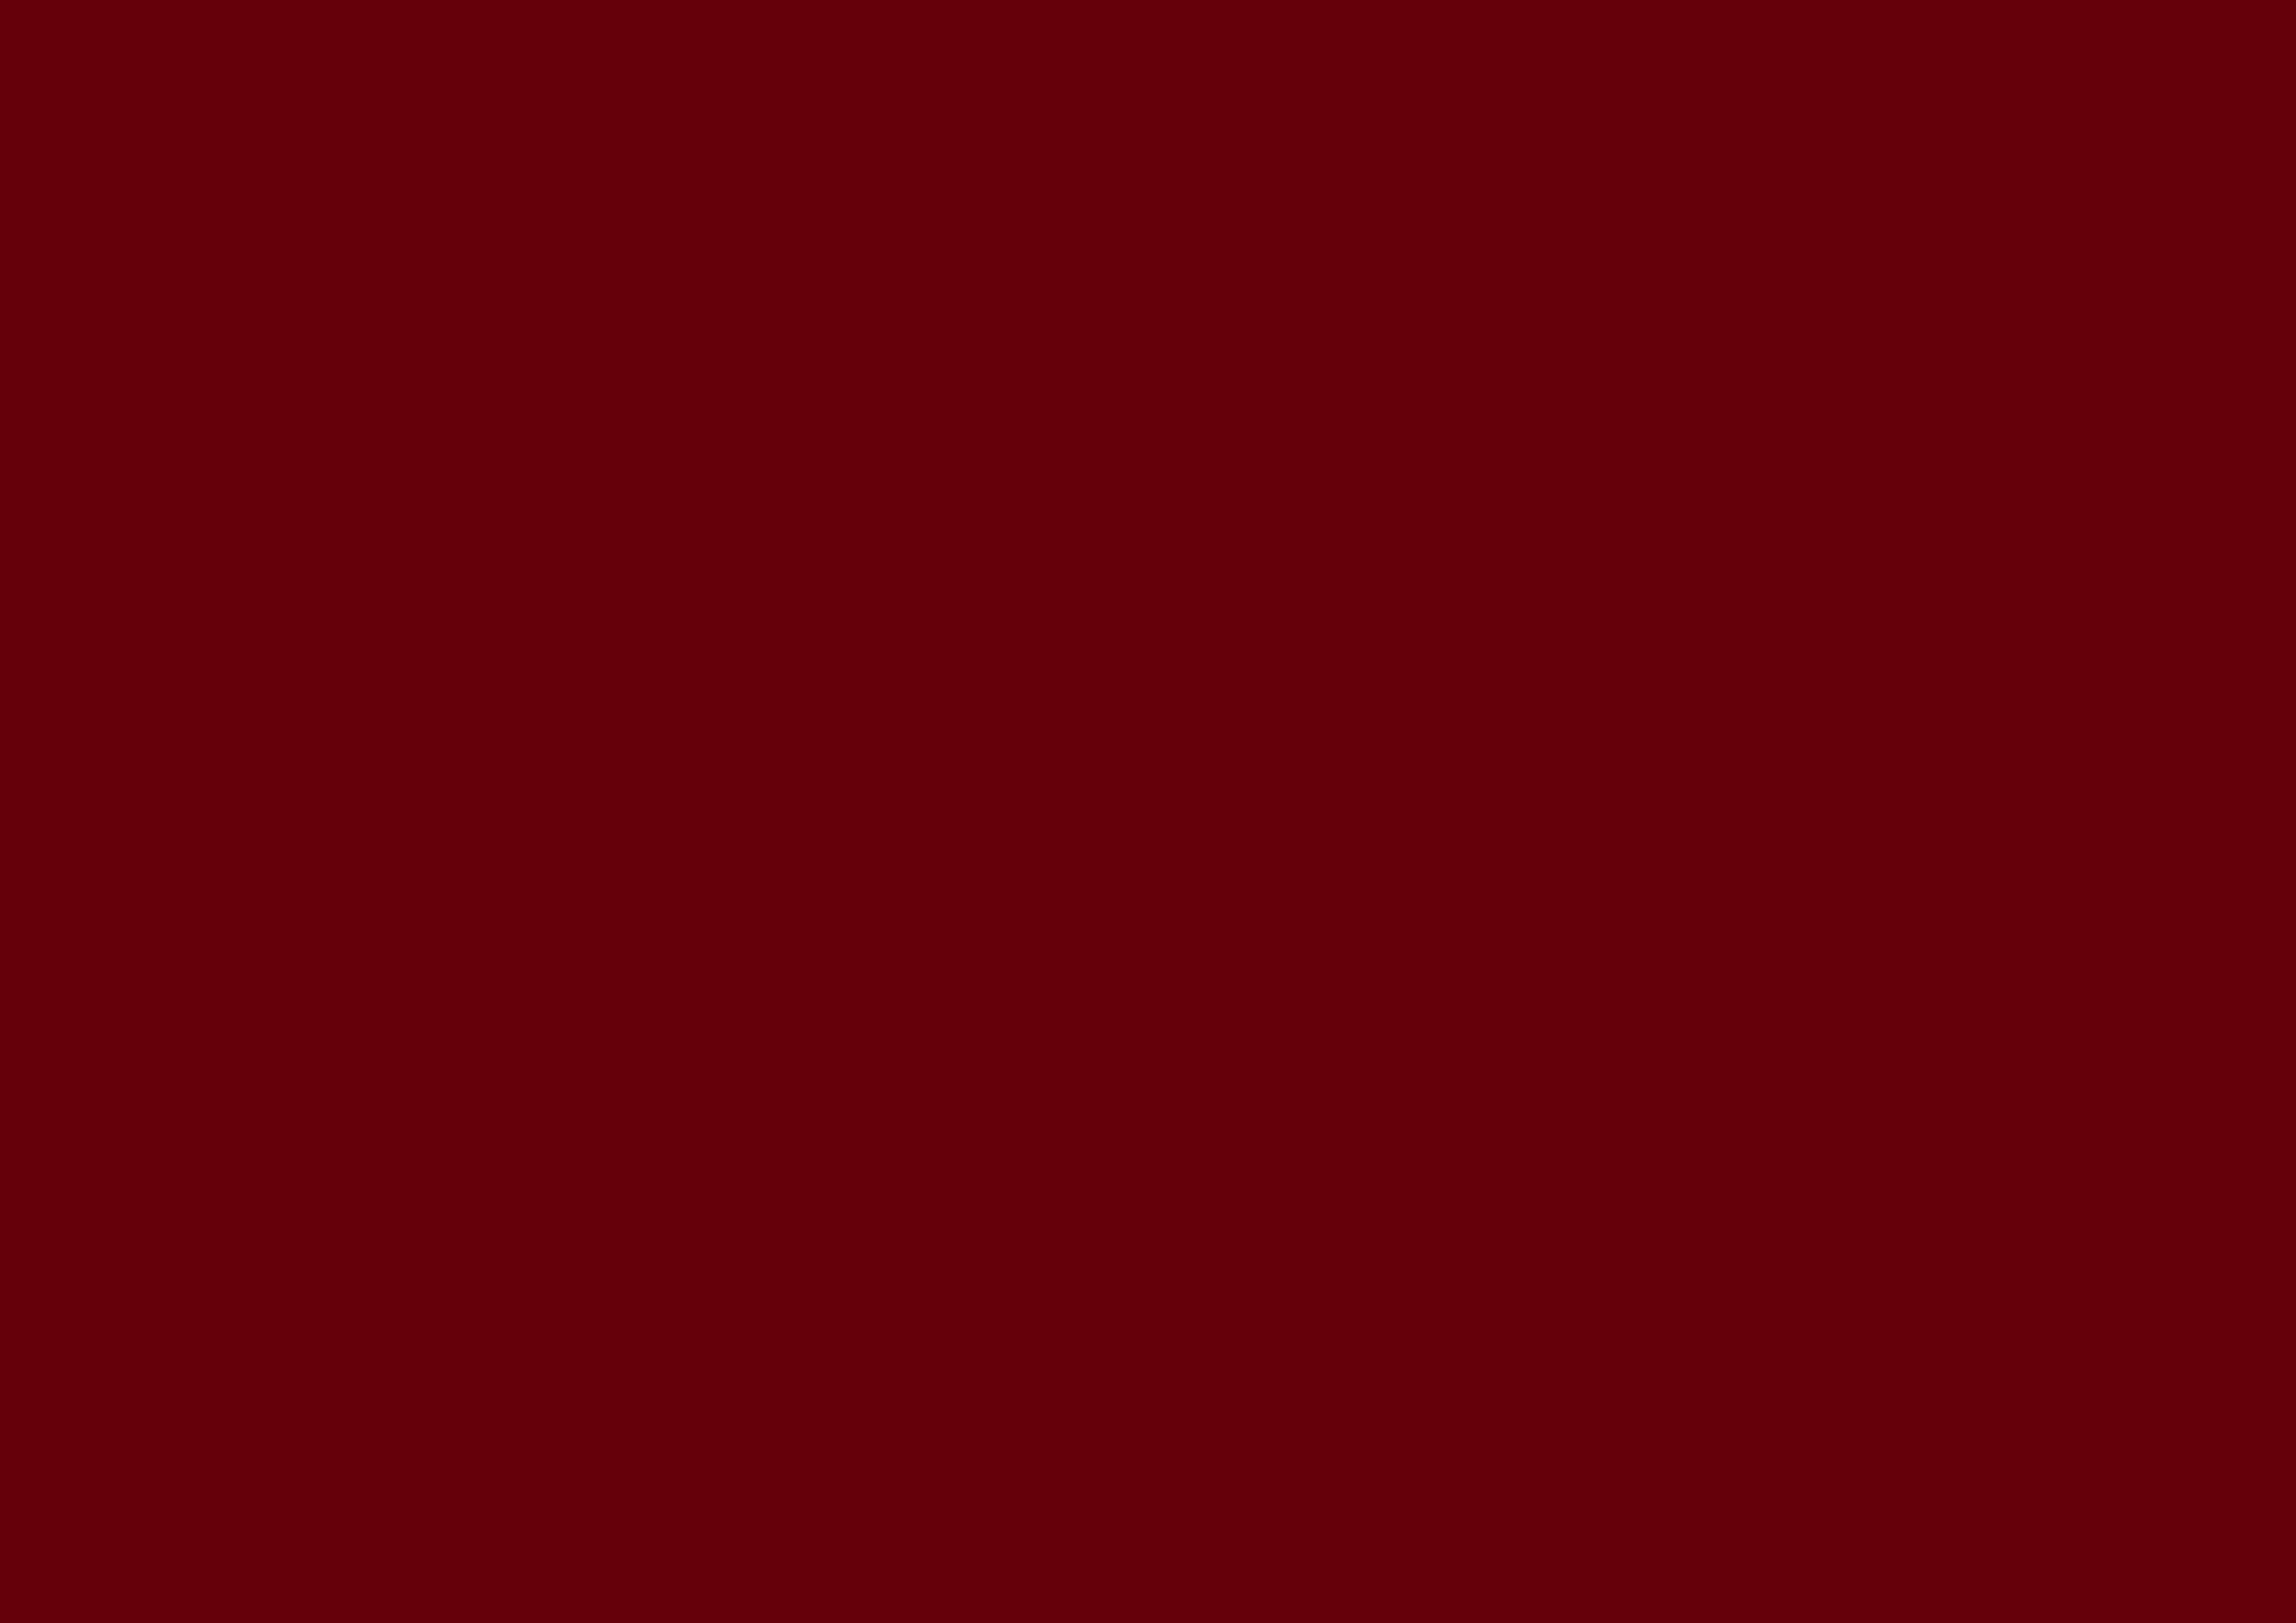 3508x2480 Rosewood Solid Color Background